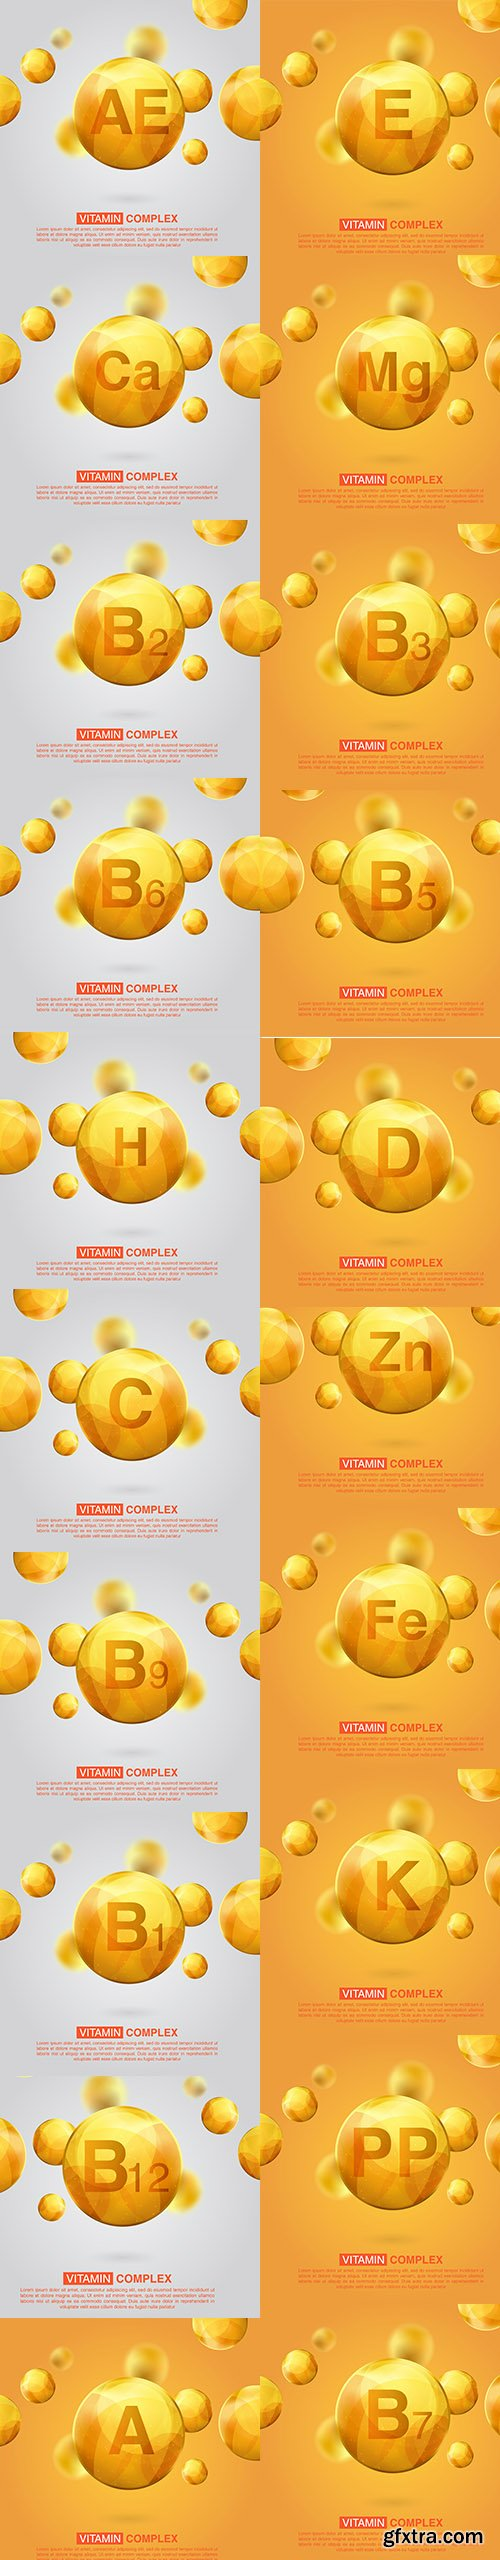 Collection of Gold Vitamin Pill Capsule Illustration